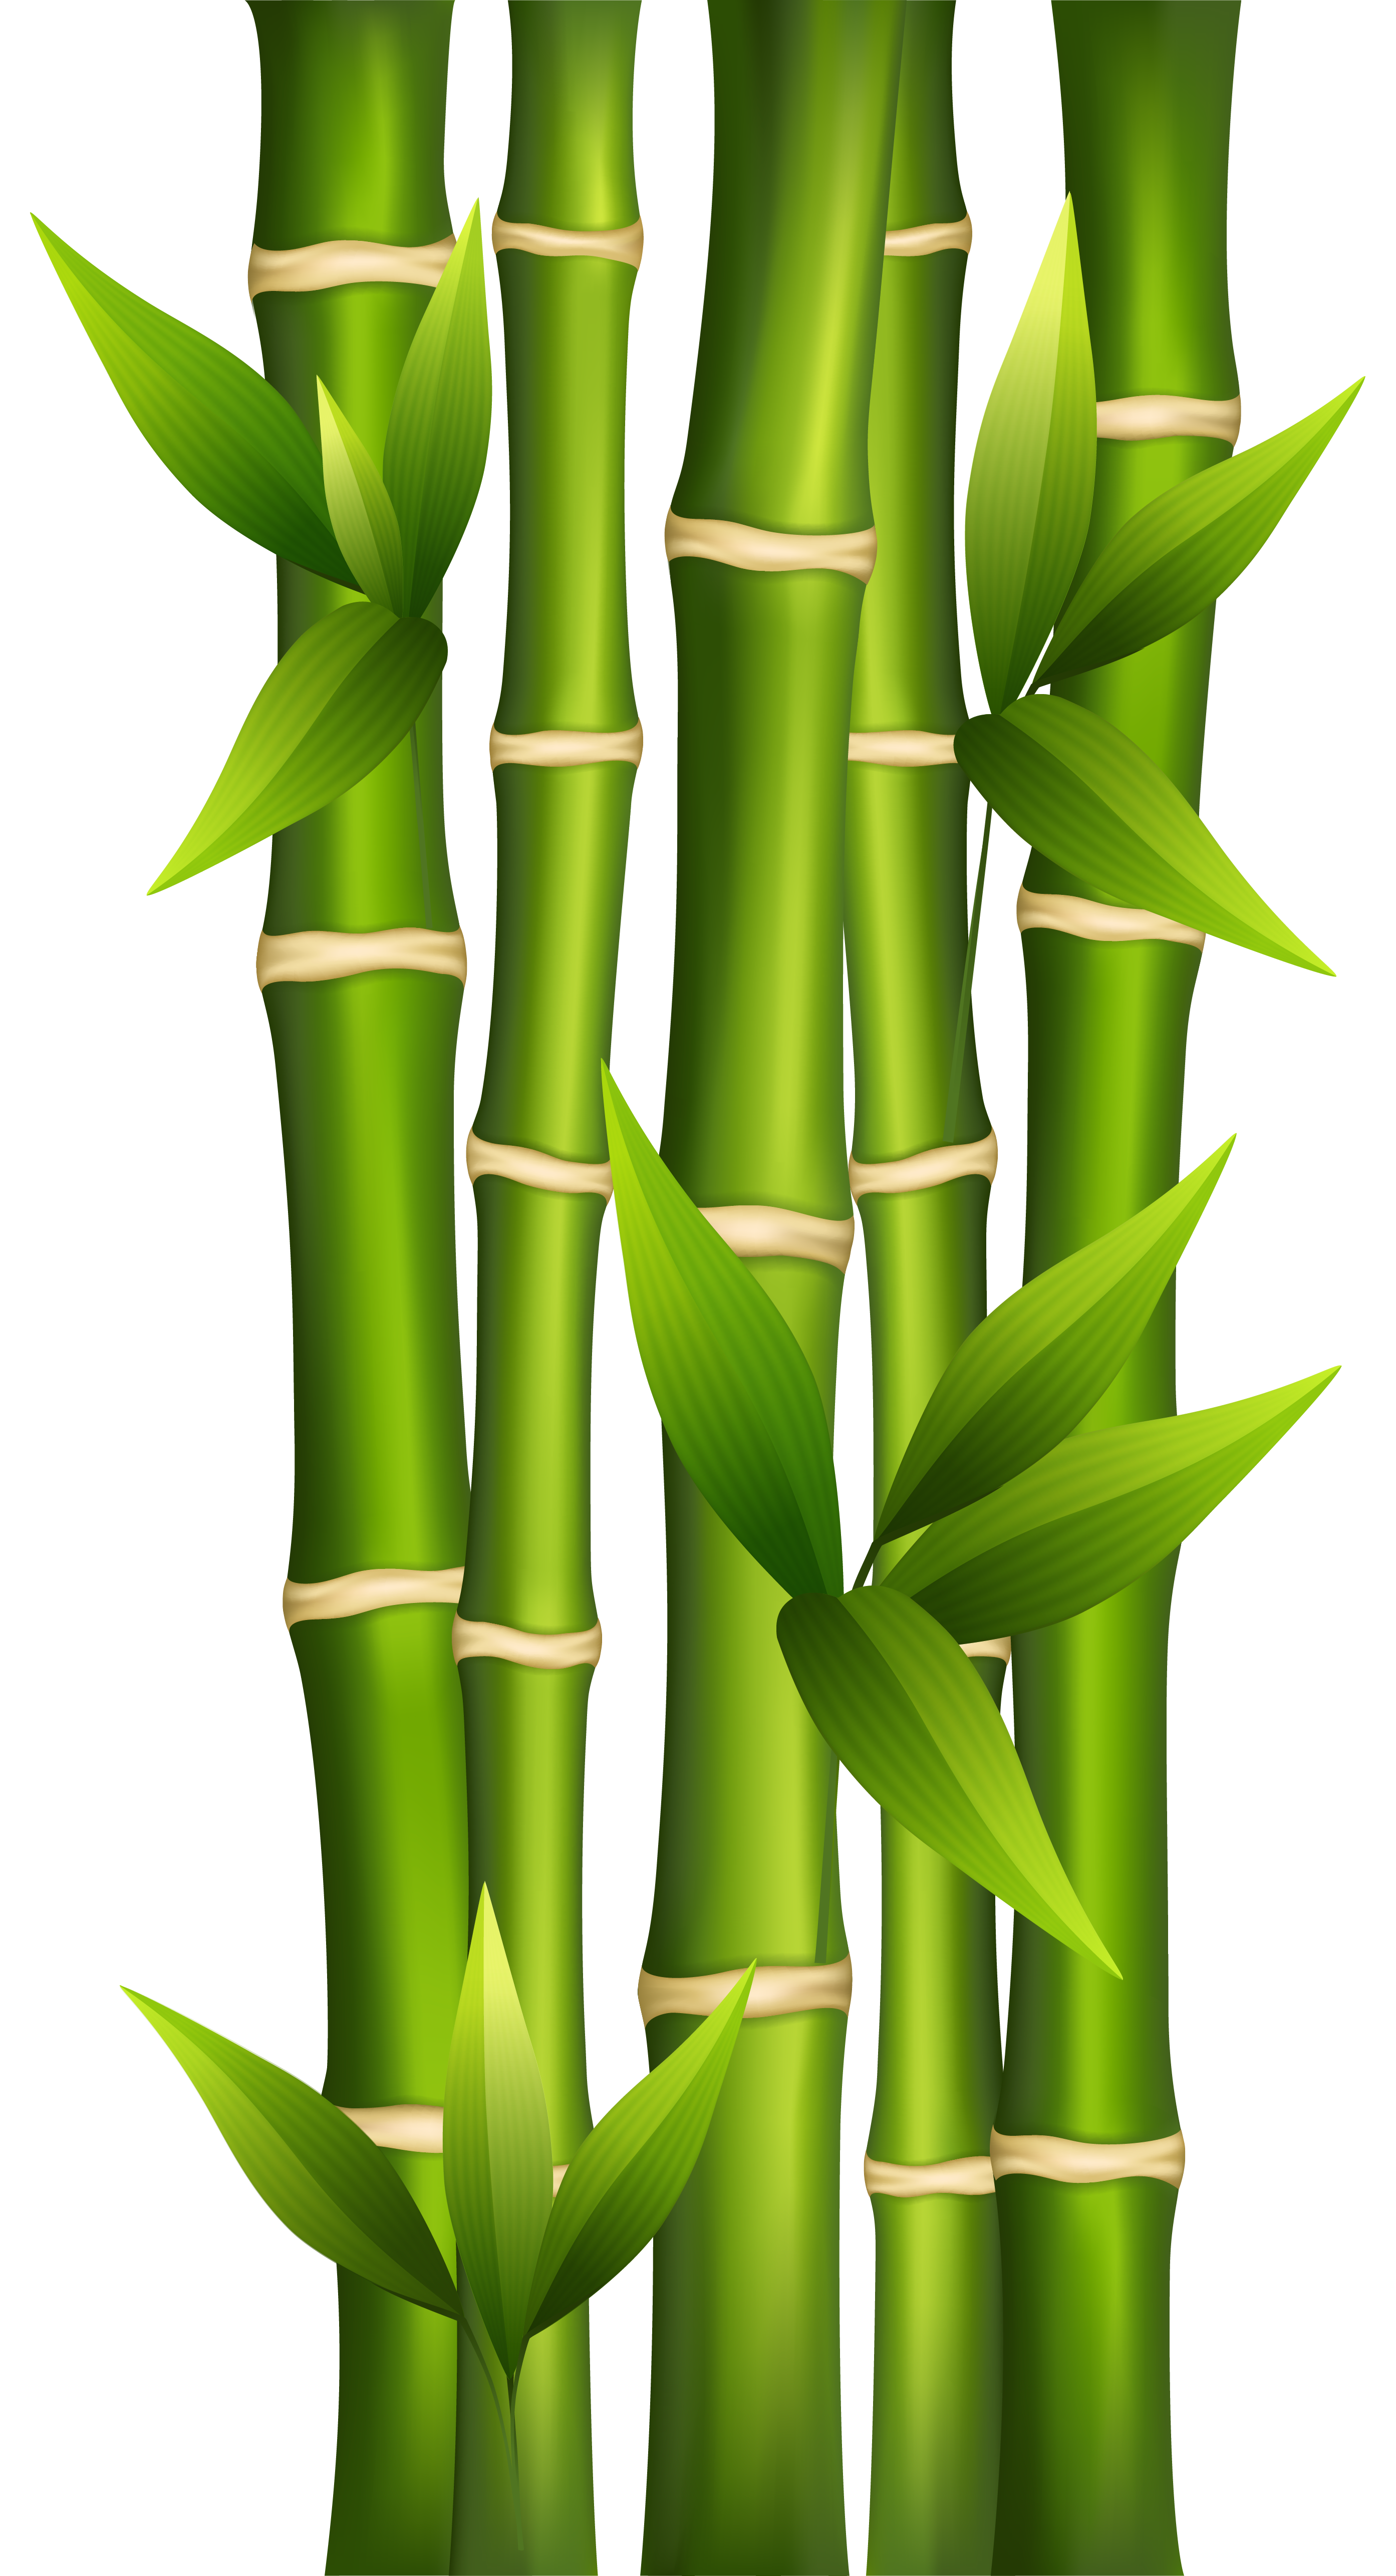 Clipart bamboo trees library Bamboo clipart 2 | Antivirus in 2019 | Bamboo drawing, Bamboo art ... library